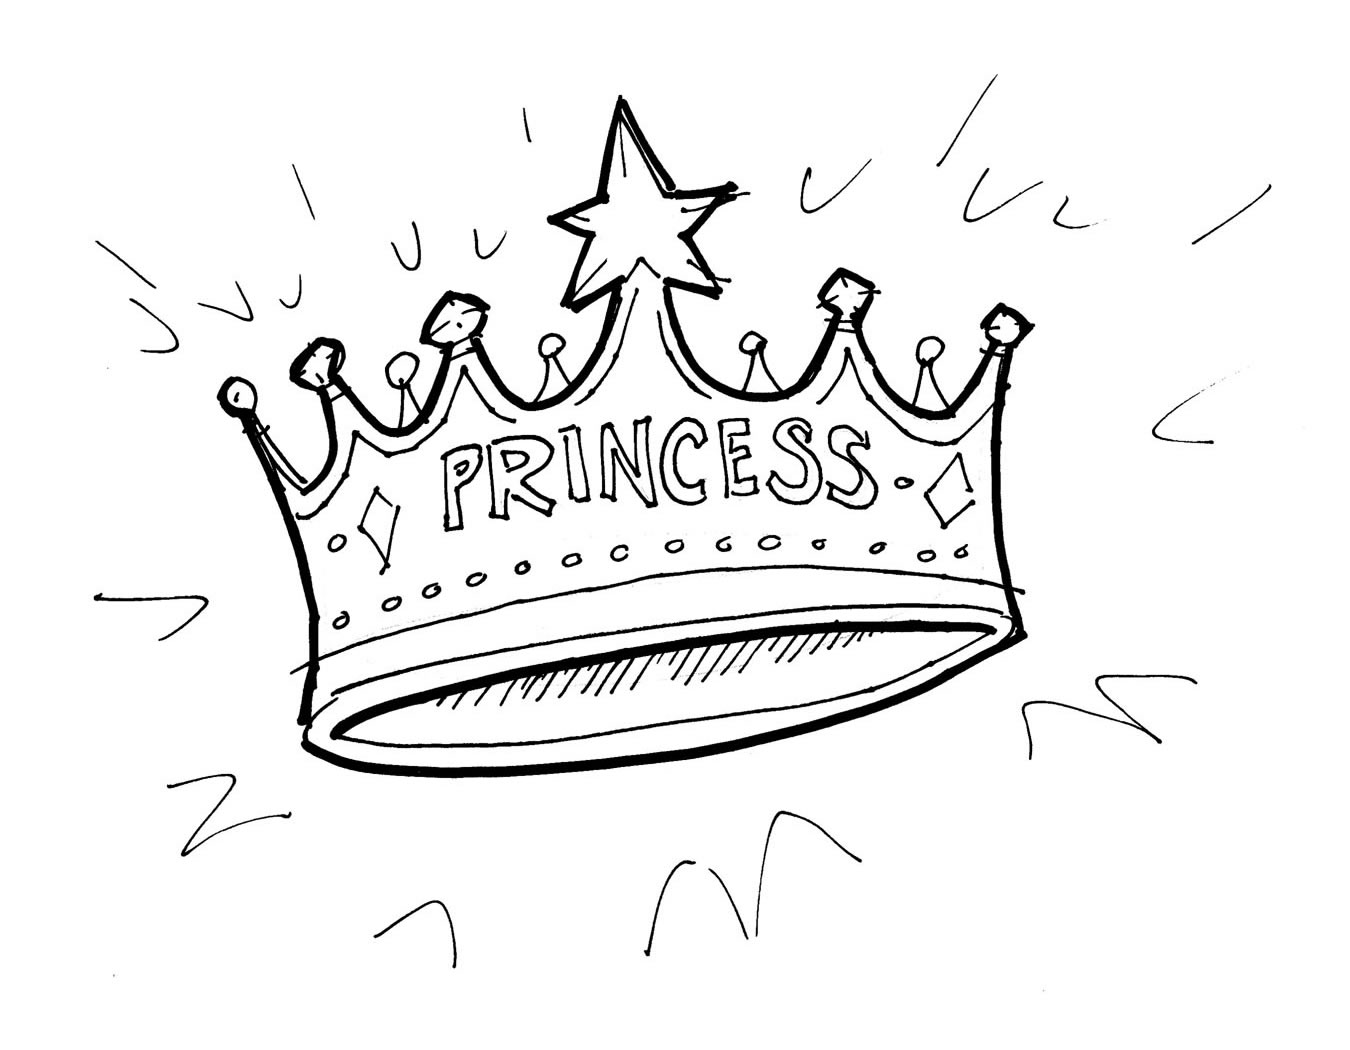 Free Crowns And Tiaras Coloring Pages Princess Tiara Coloring Pages Free Coloring Sheets